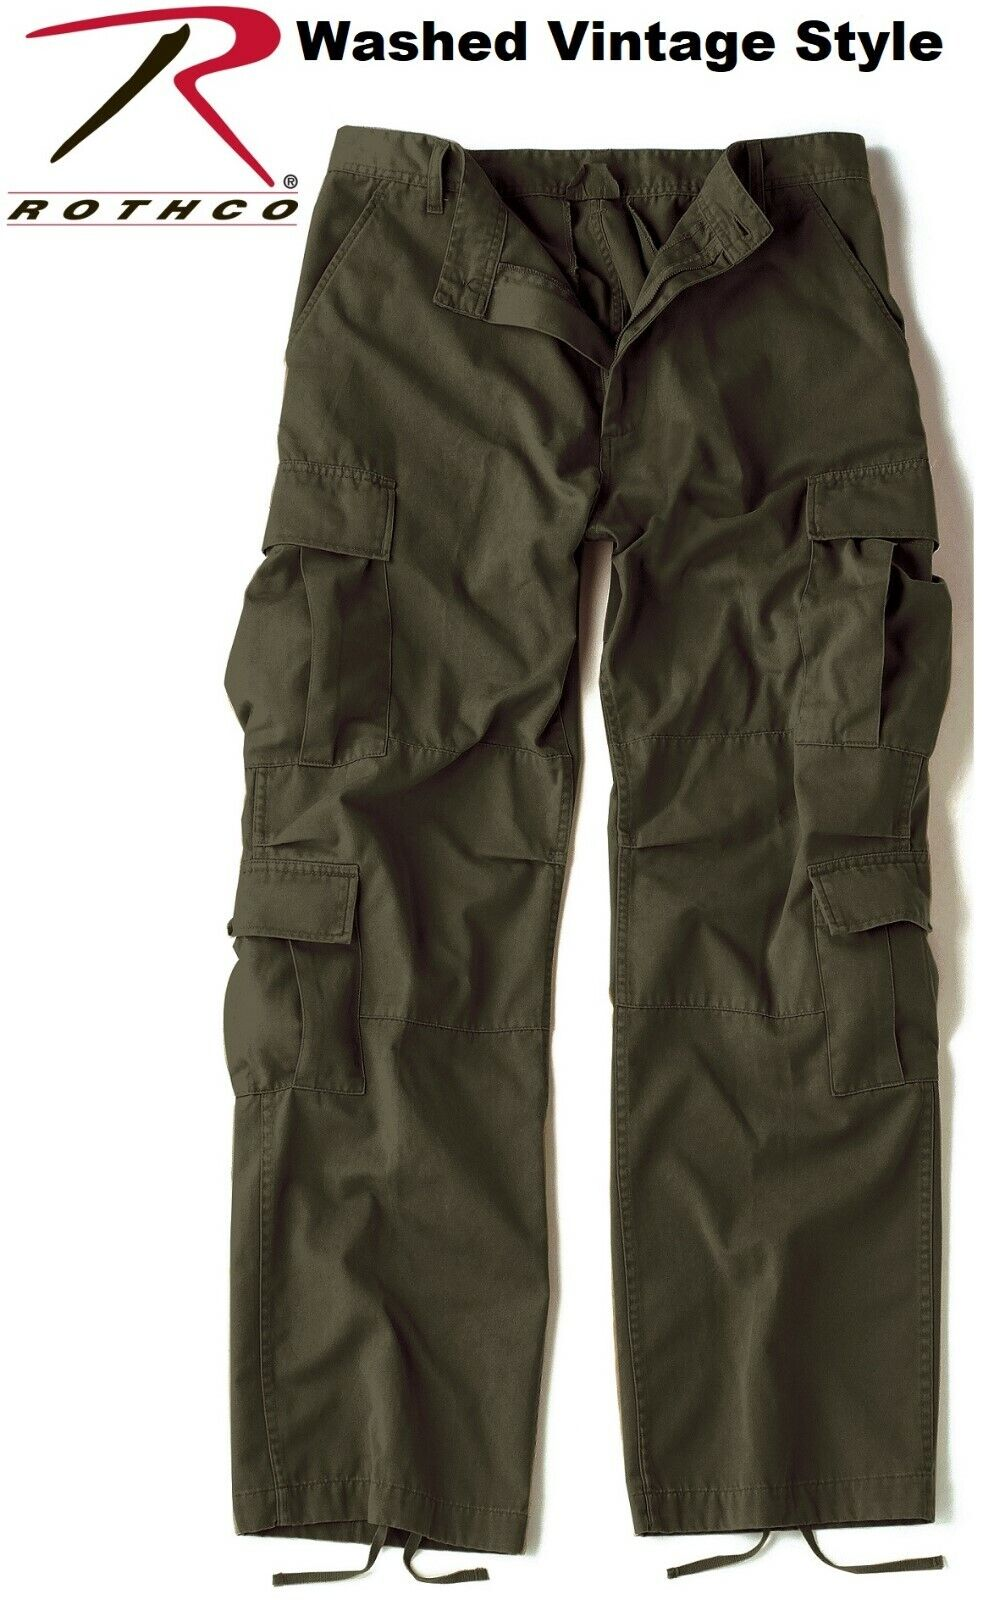 Vintage OD Green Army Paratrooper Pants Tactical Military BDU Fatigue 2786